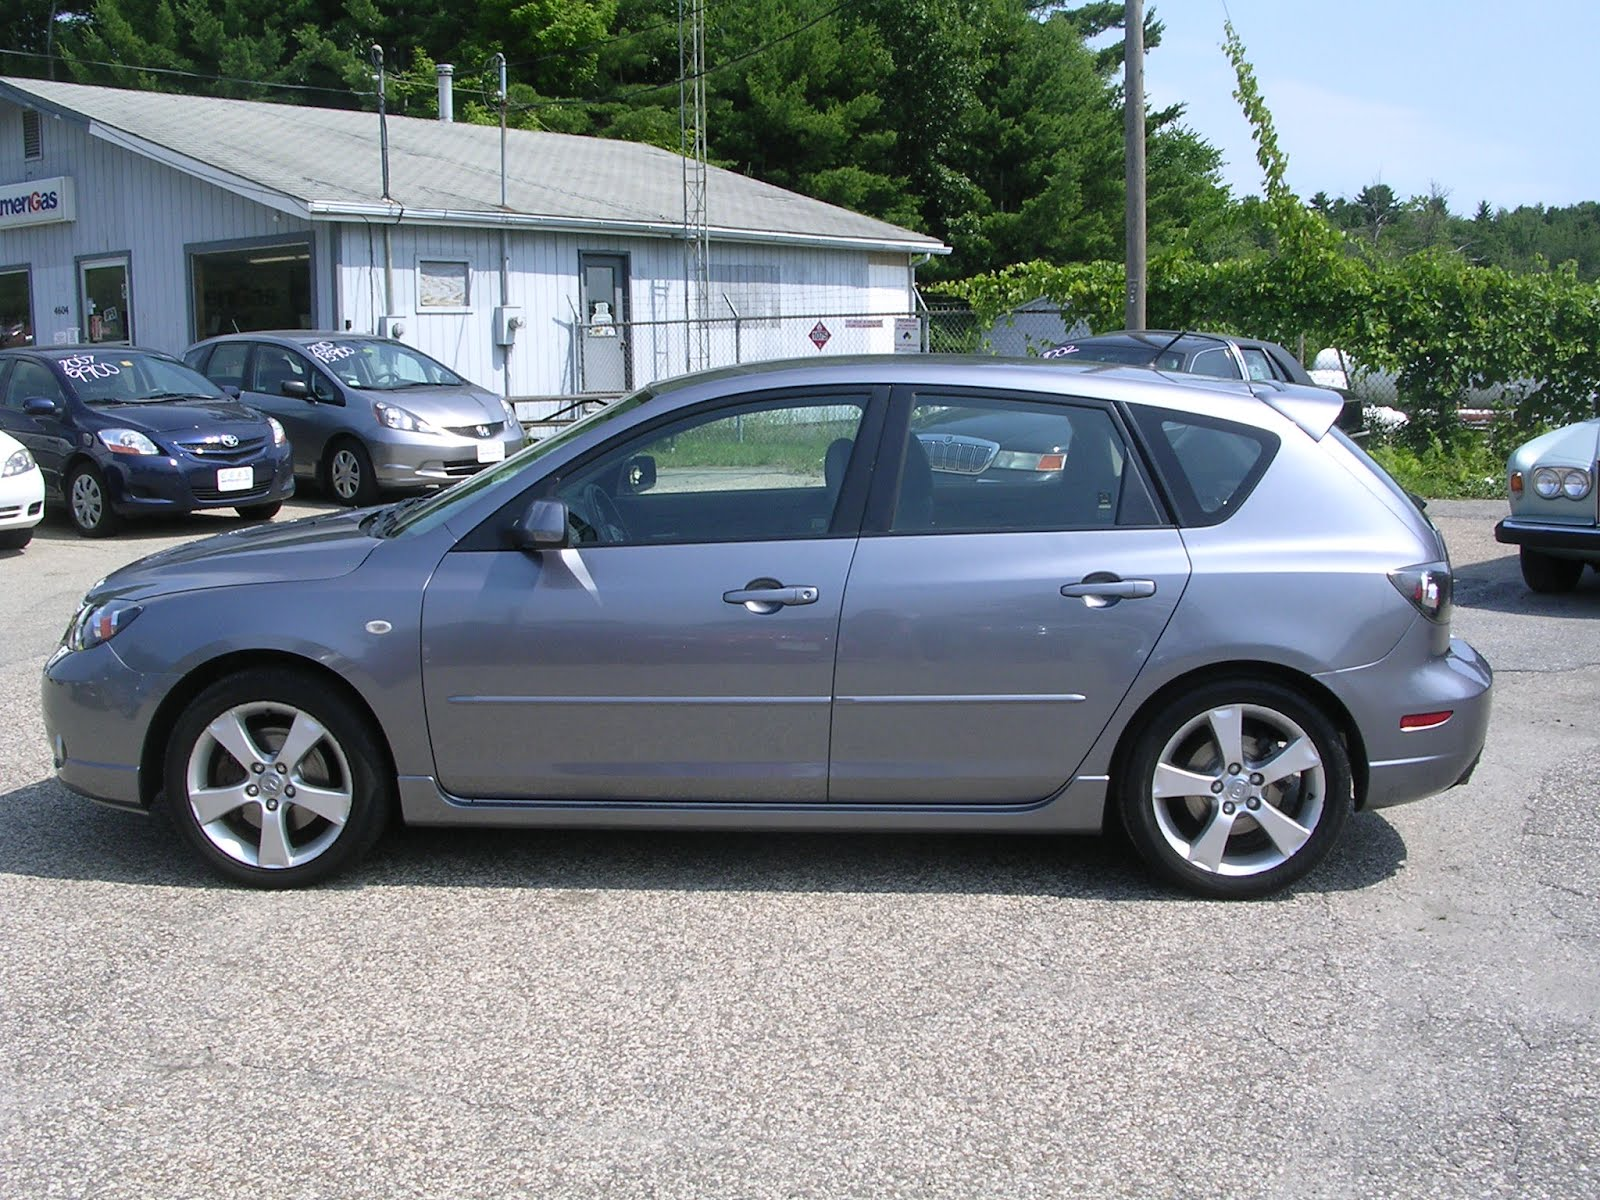 EARTHY CAR OF THE WEEK: 2005 Mazda Mazda3